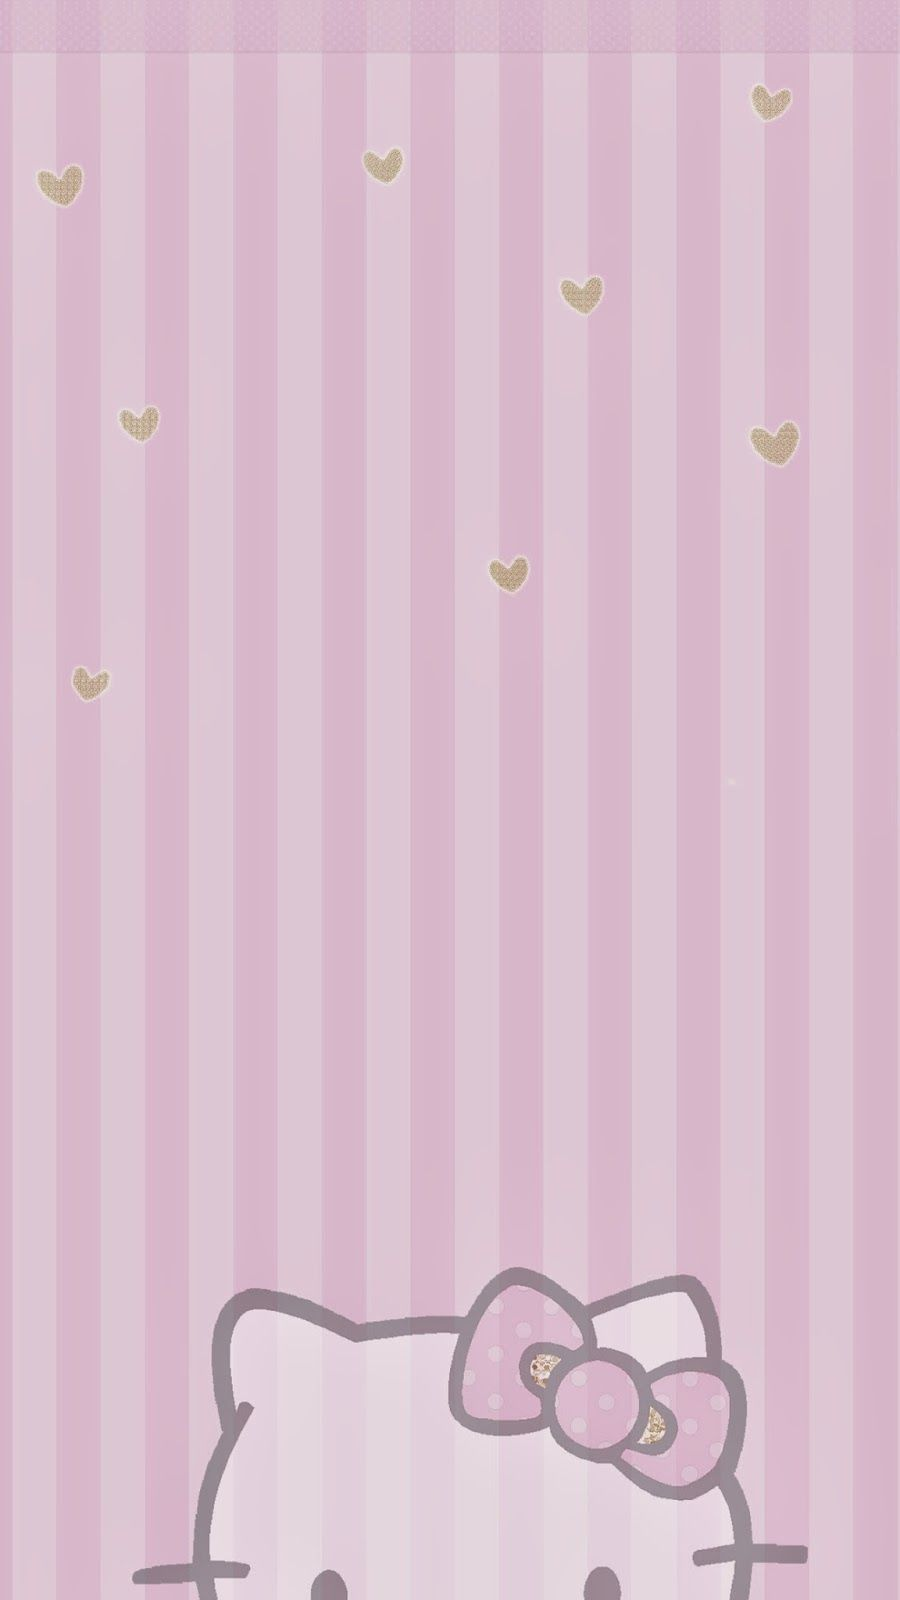 Pretty Walls Cute Freebie Even My Phone Wants To Look Cute